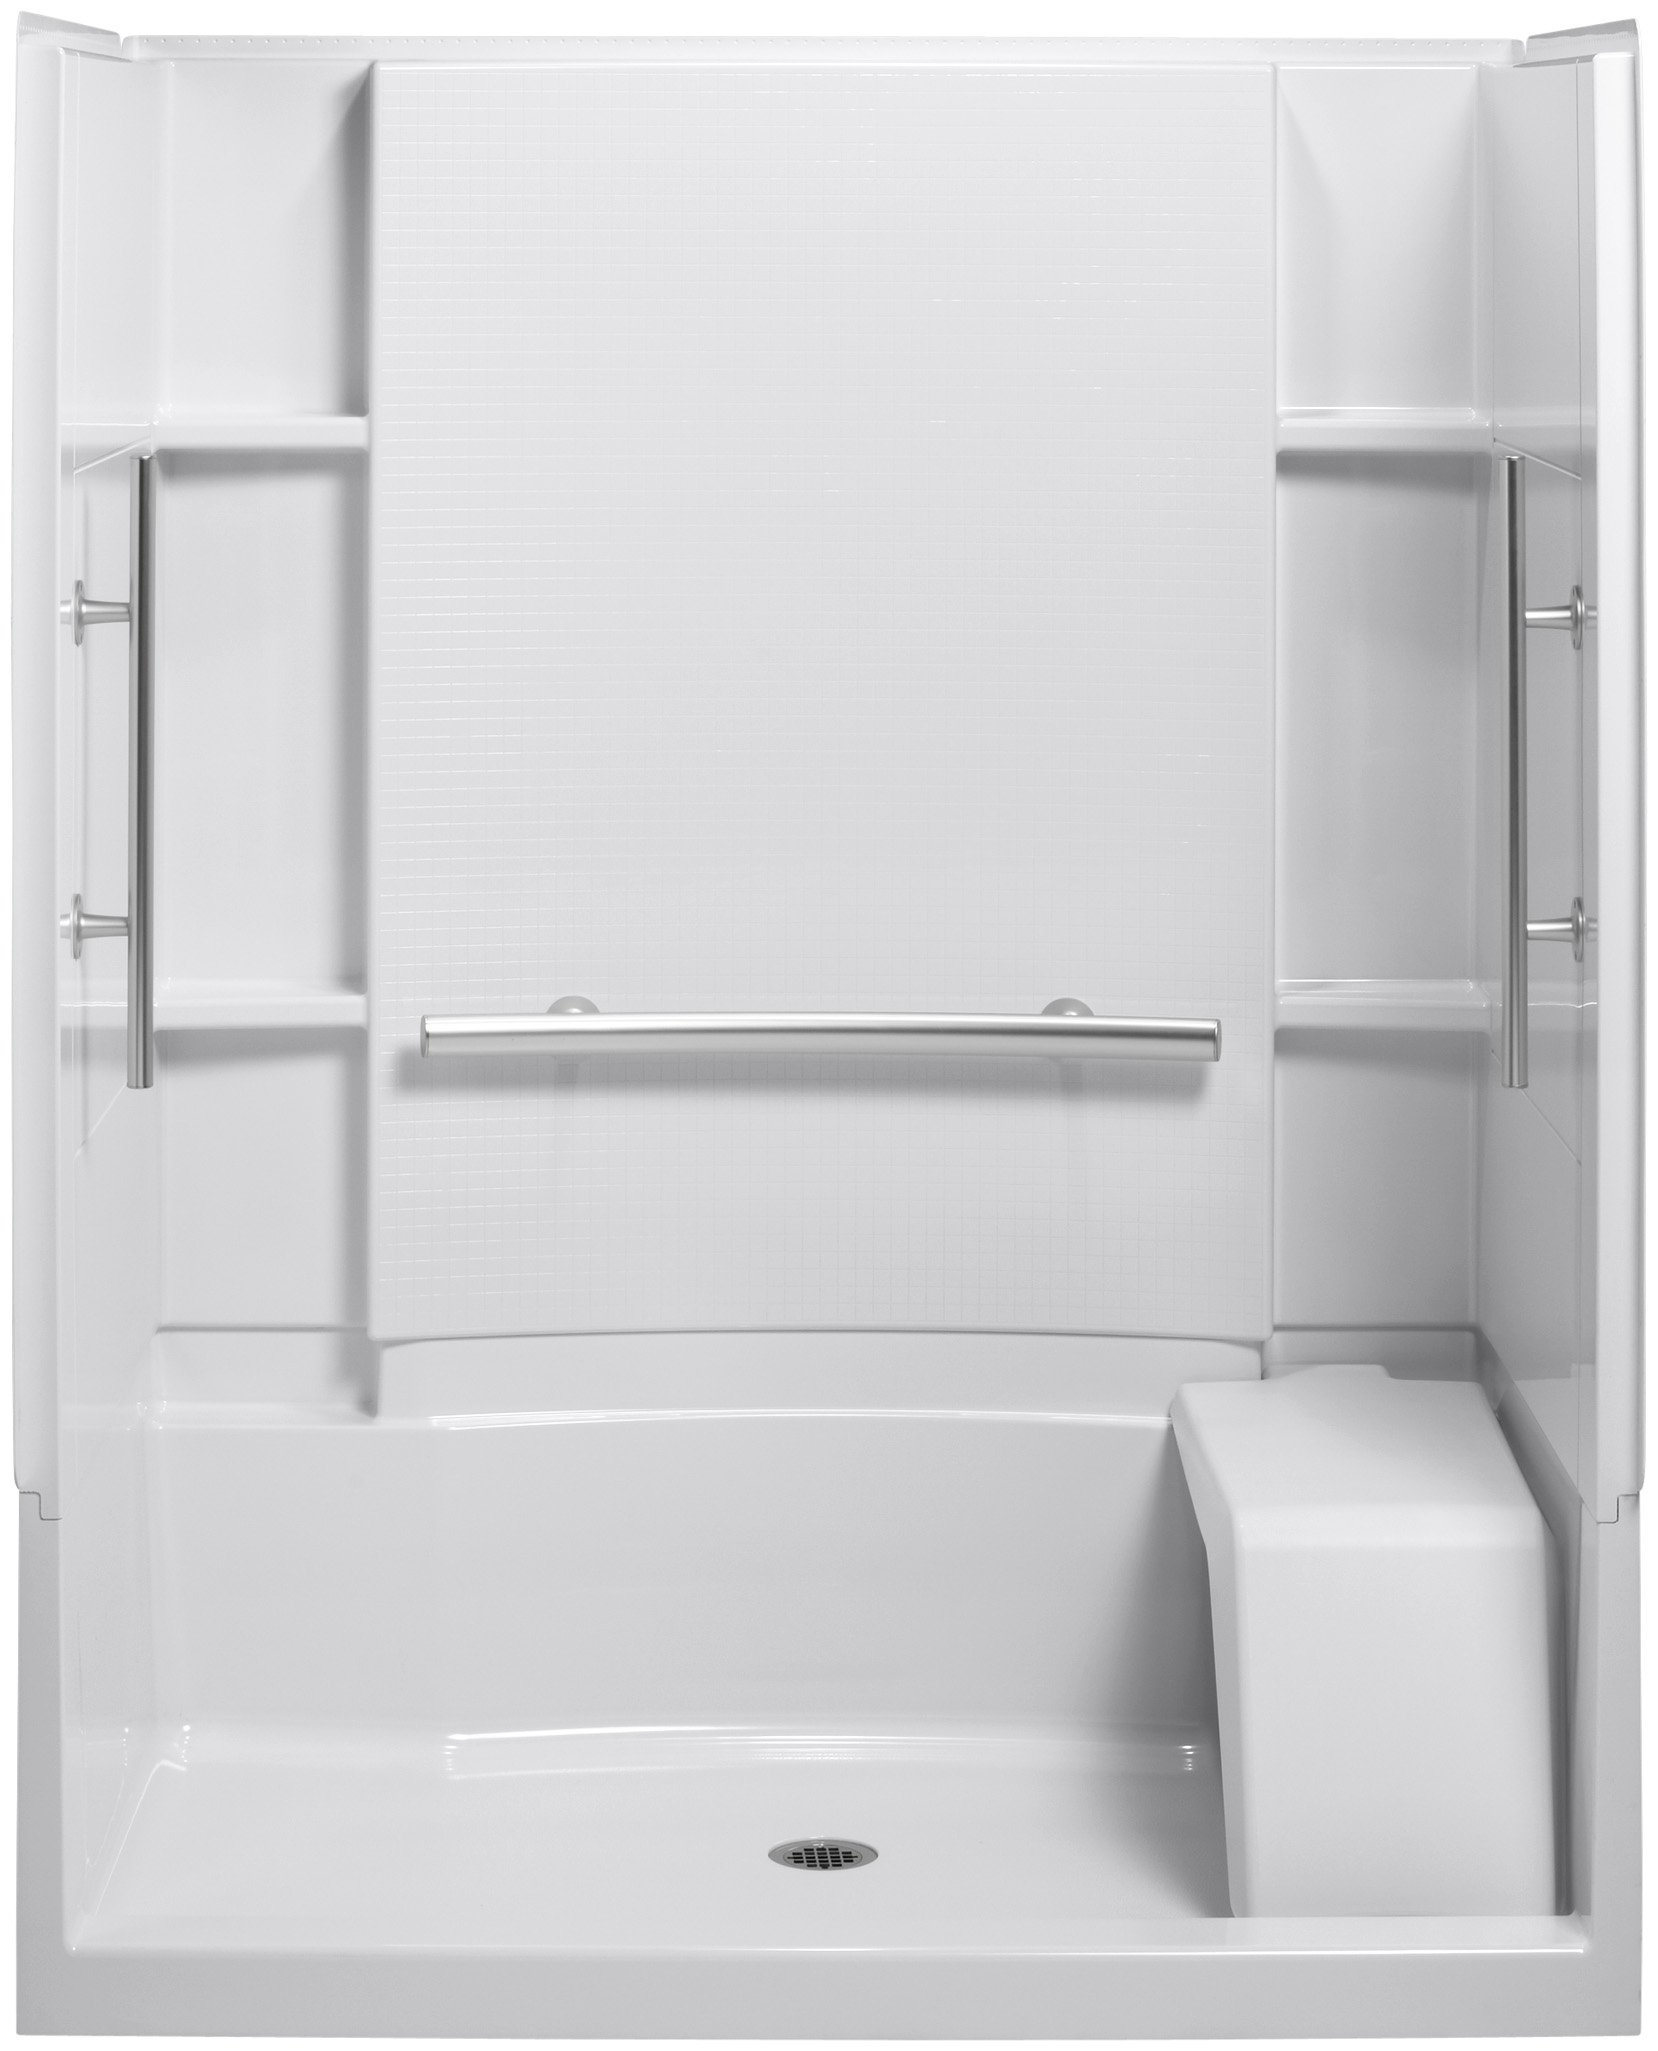 Sterling Plumbing 72290103-N-0 Accord 36-Inch x 60-Inch x 74-1/2-Inch Shower Kit with Seat and Grab Bars, White